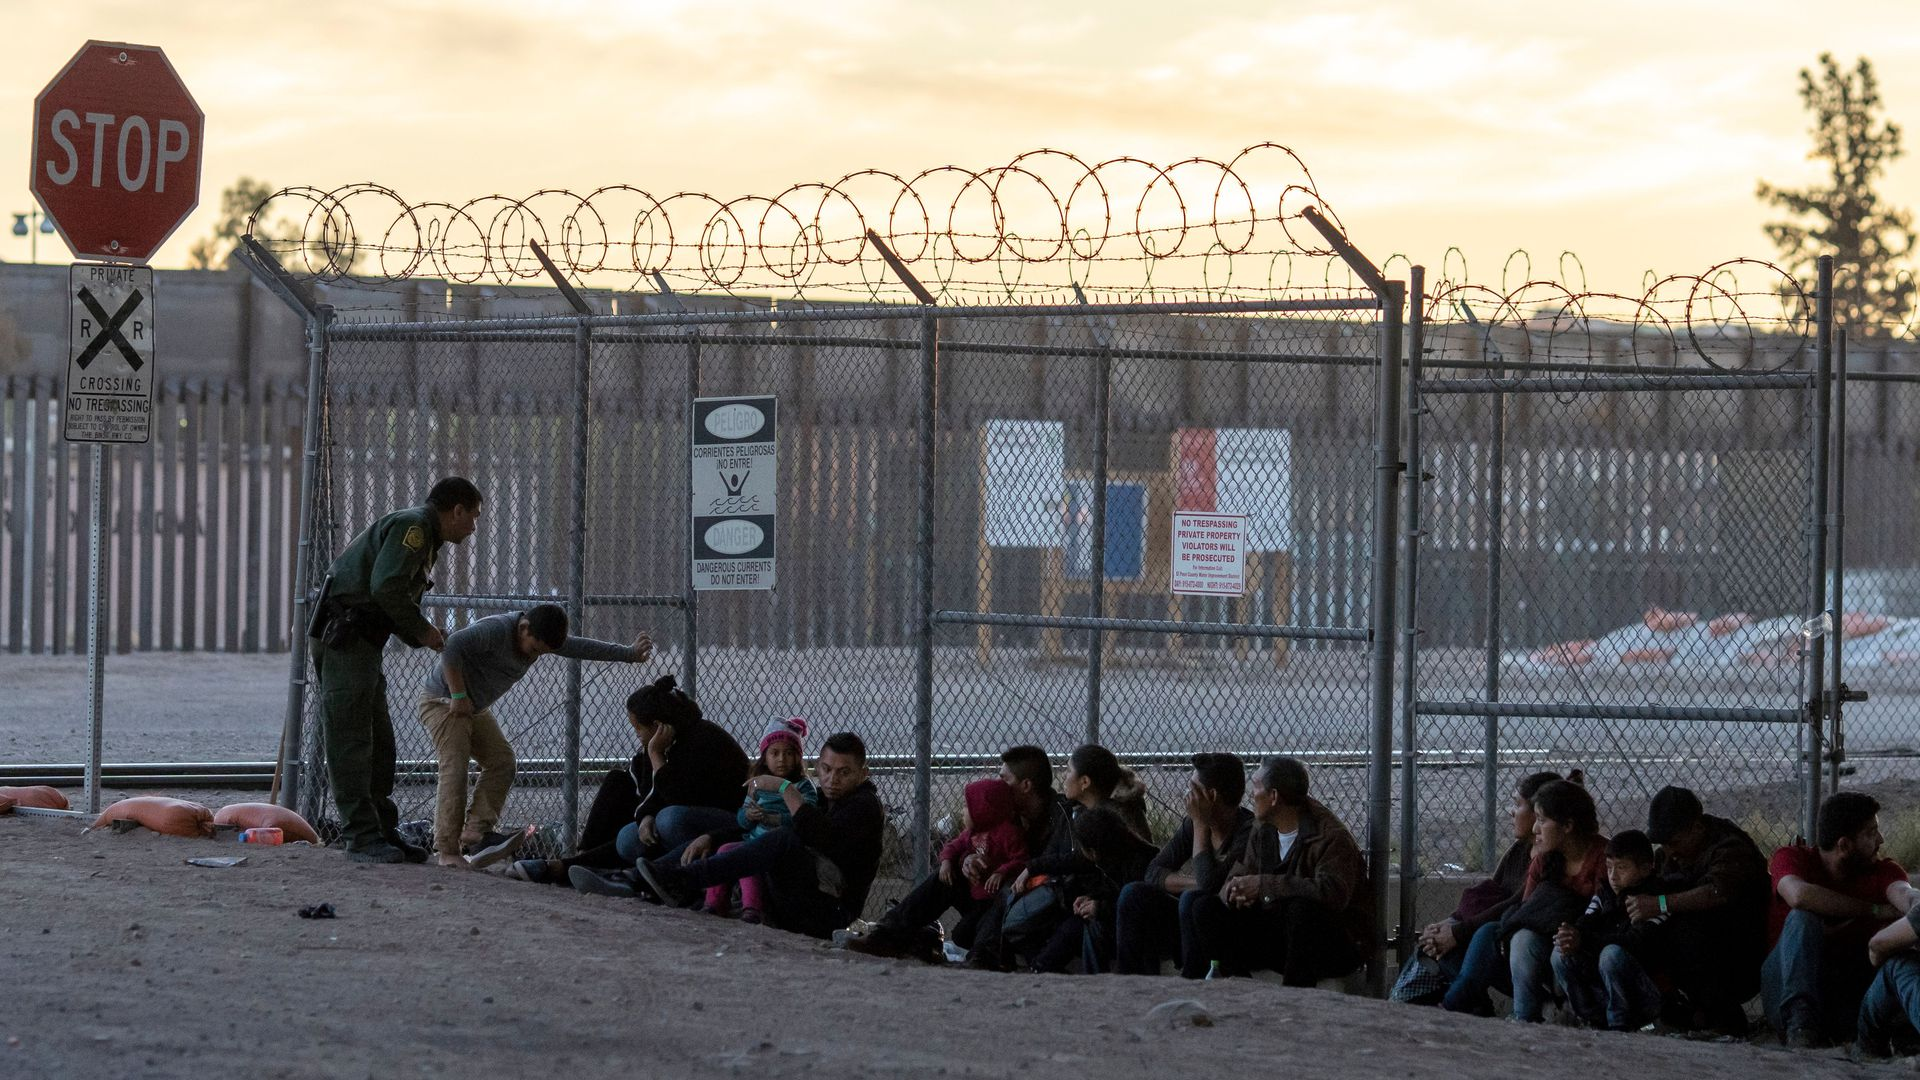 Migrants sitting against a chained link fence while one border patrol officer speaks to them.